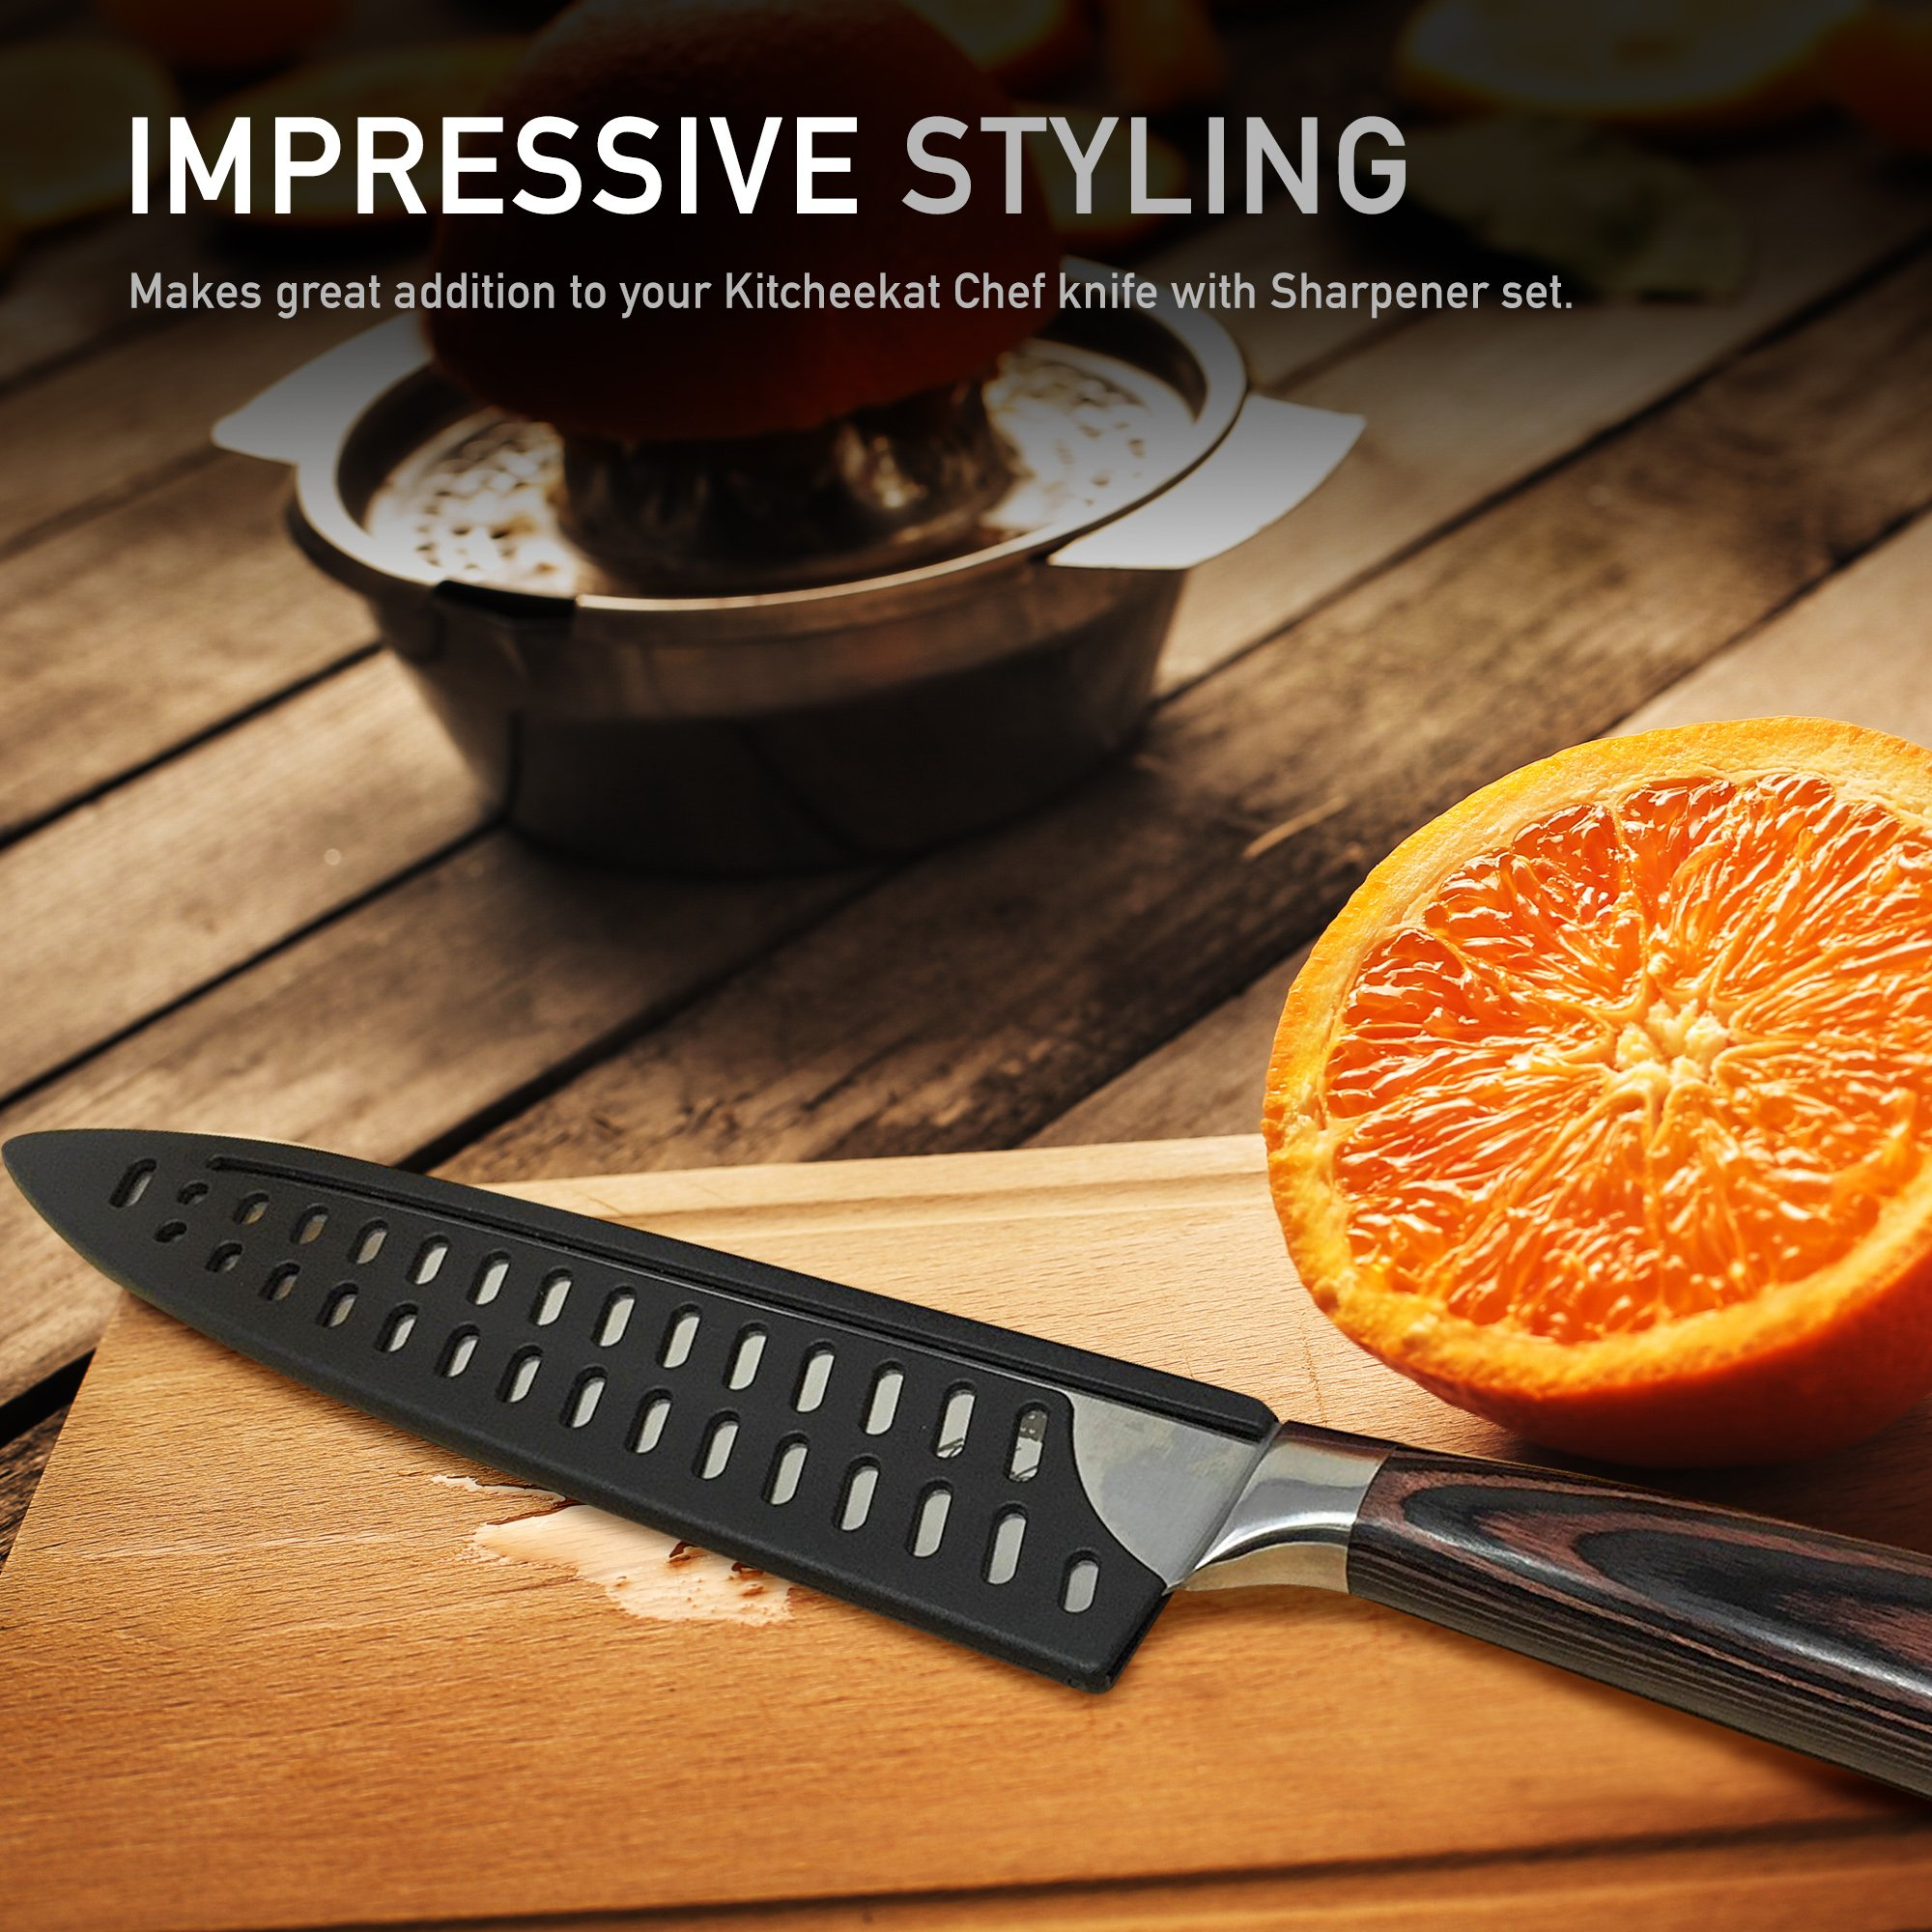 8 Inch Perforated Kitchen Knife Guard | Fits Slim Style 8-Inch Chef Knives Keeps Blade Sharp | Unique Design Prevents Moisture and Helps Drying | Stores Flat In Your Drawer, Excellent For Travel by Kitcheekat (Image #1)